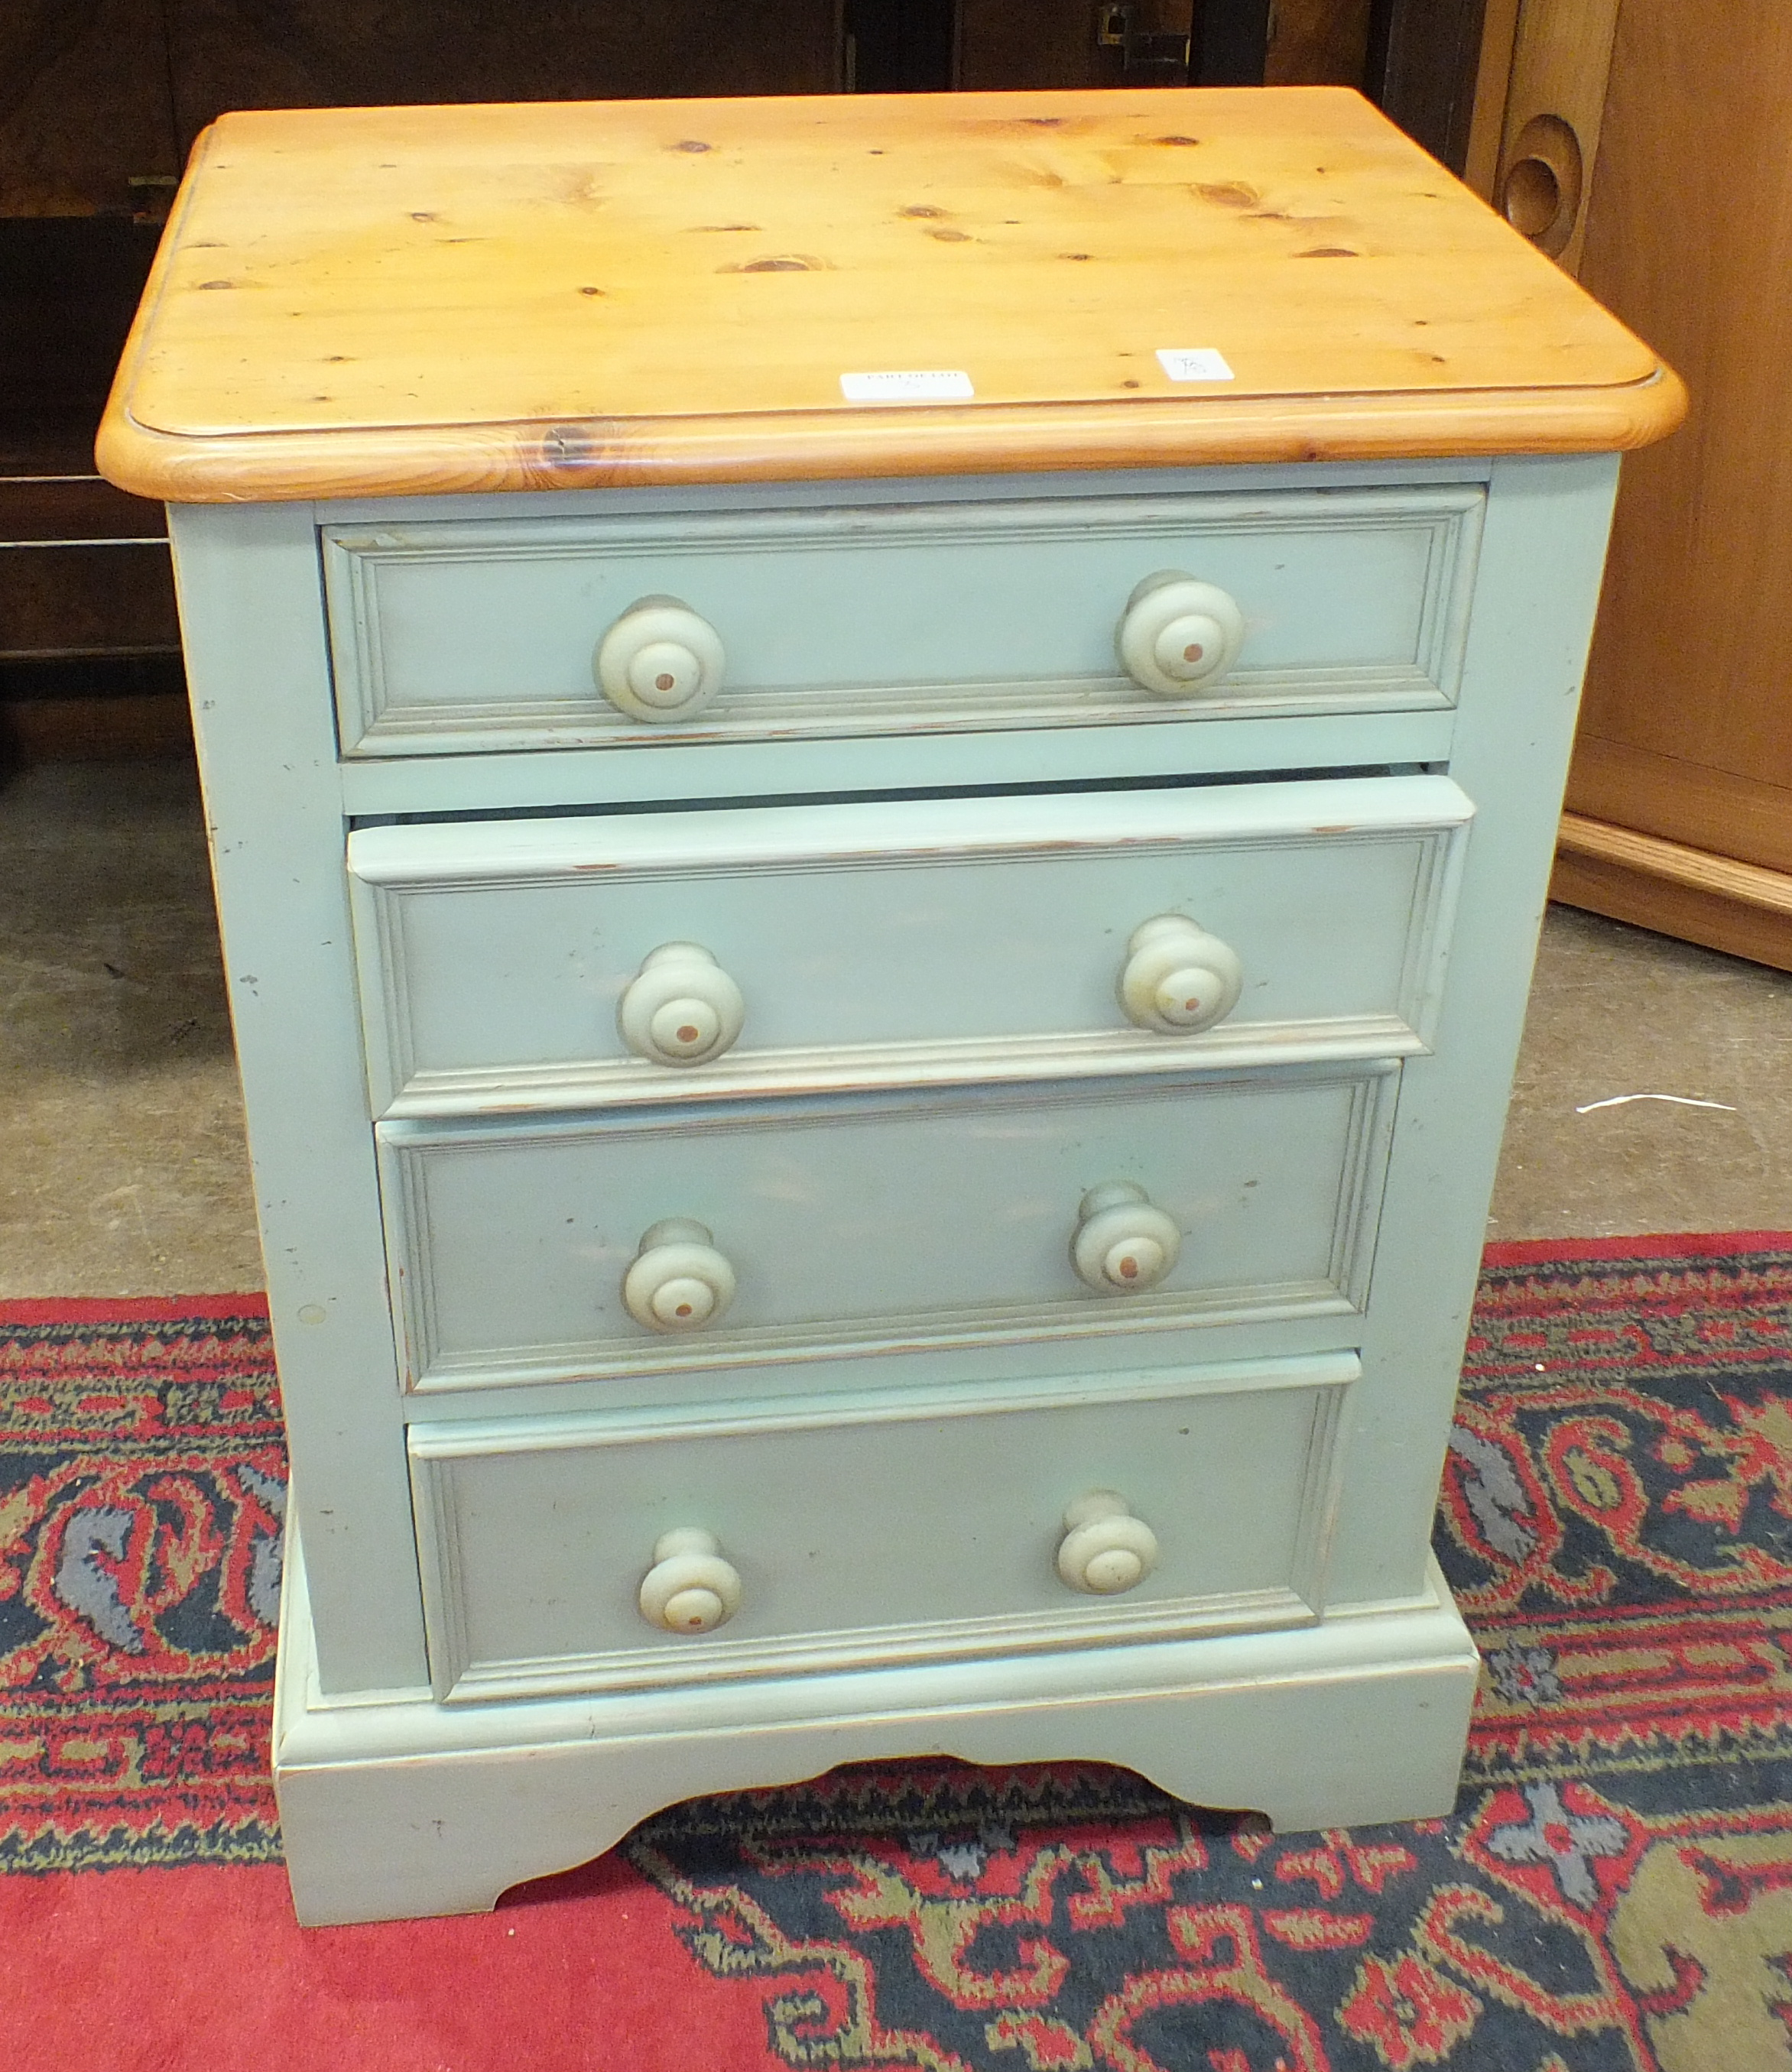 A pair of Yesterday's Pine of Gainsborough blue-painted narrow chests with six graduated drawers, - Image 2 of 2